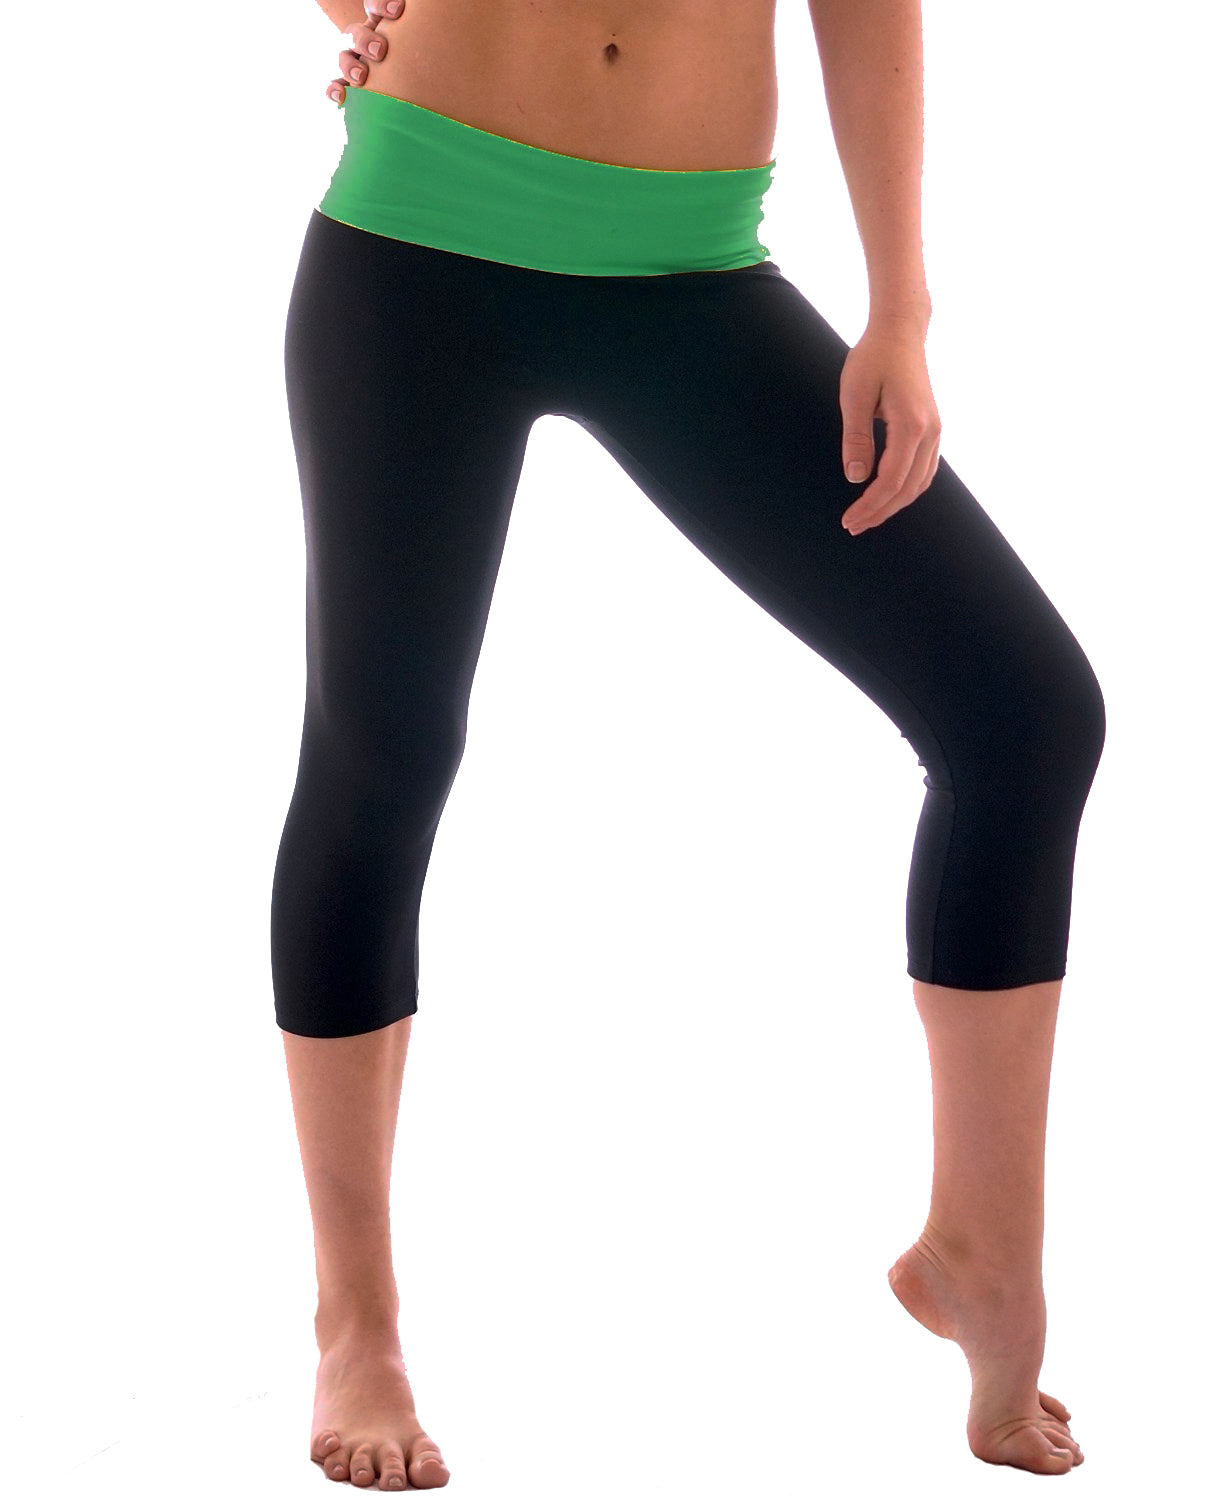 Women's Slimming Foldover Capri Crop Yoga Pants